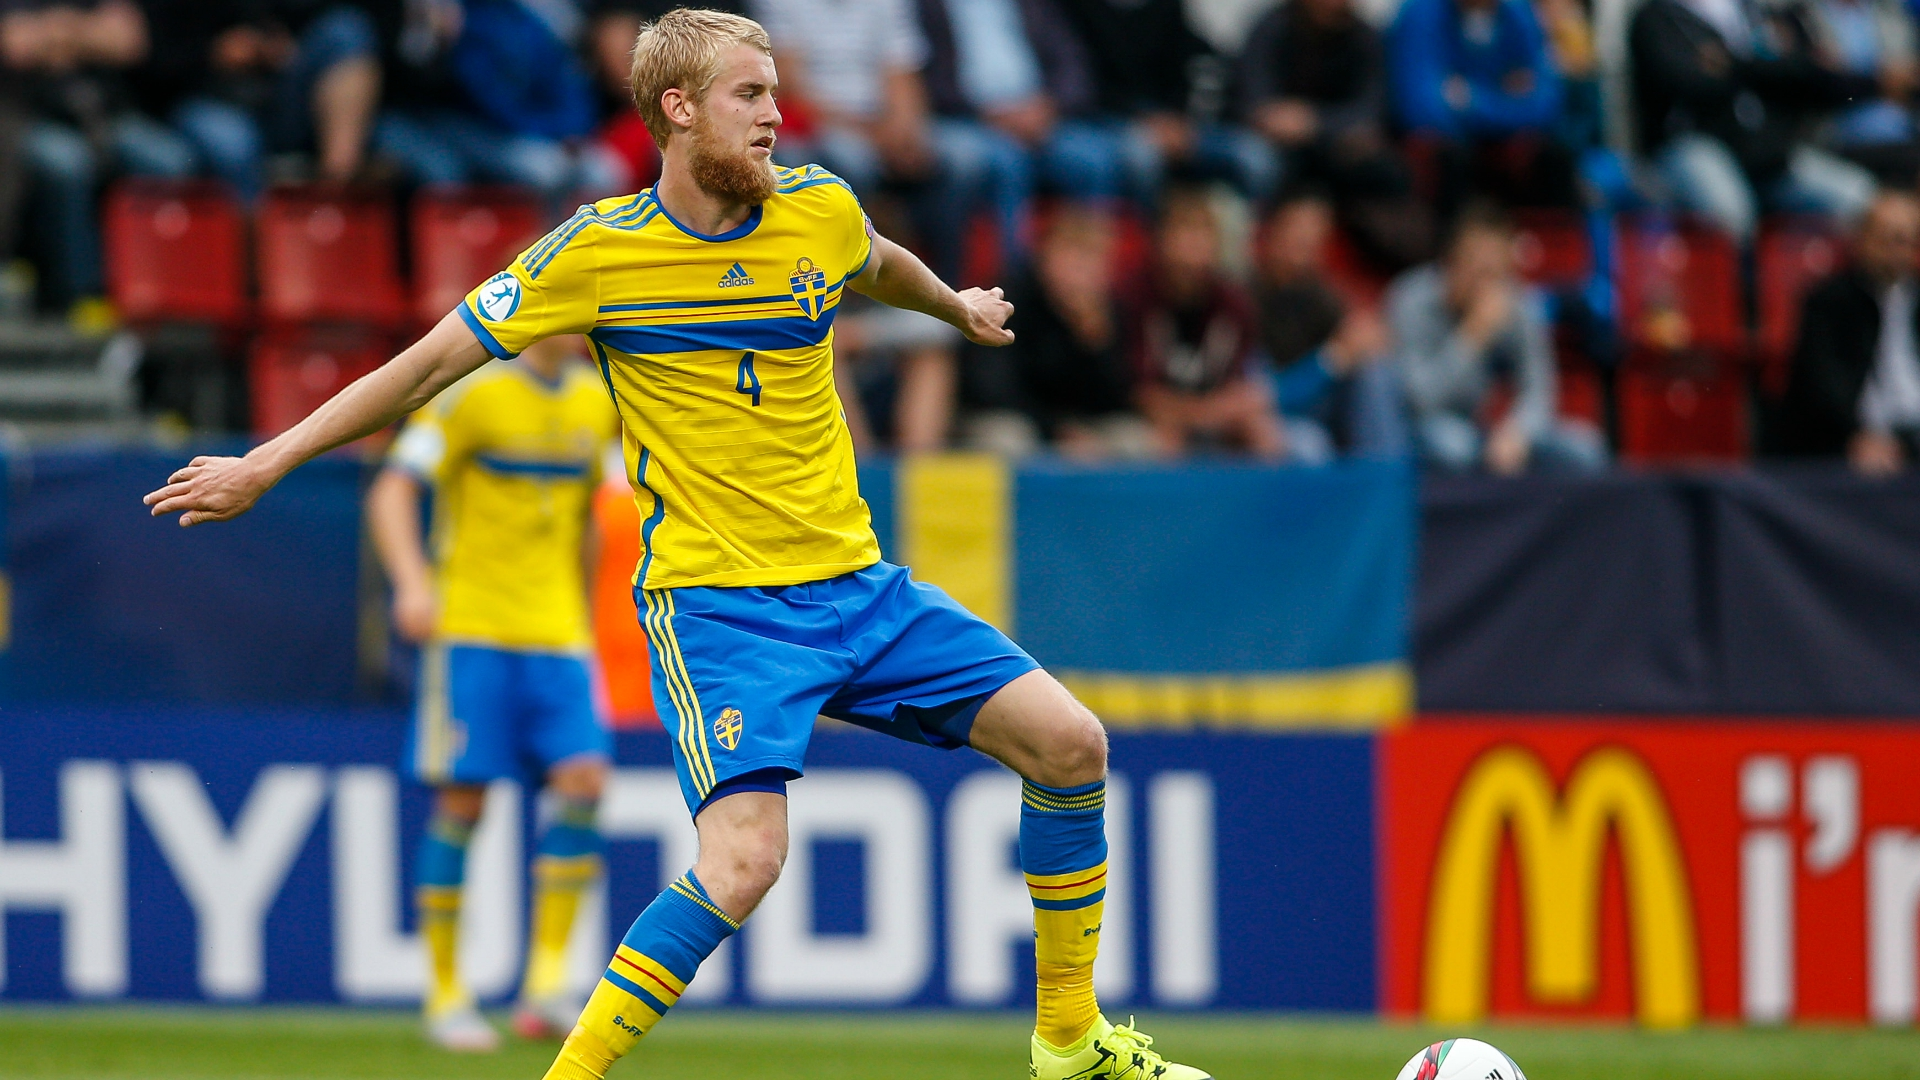 Rangers close in on €4m Helander deal as Sweden star agrees personal terms